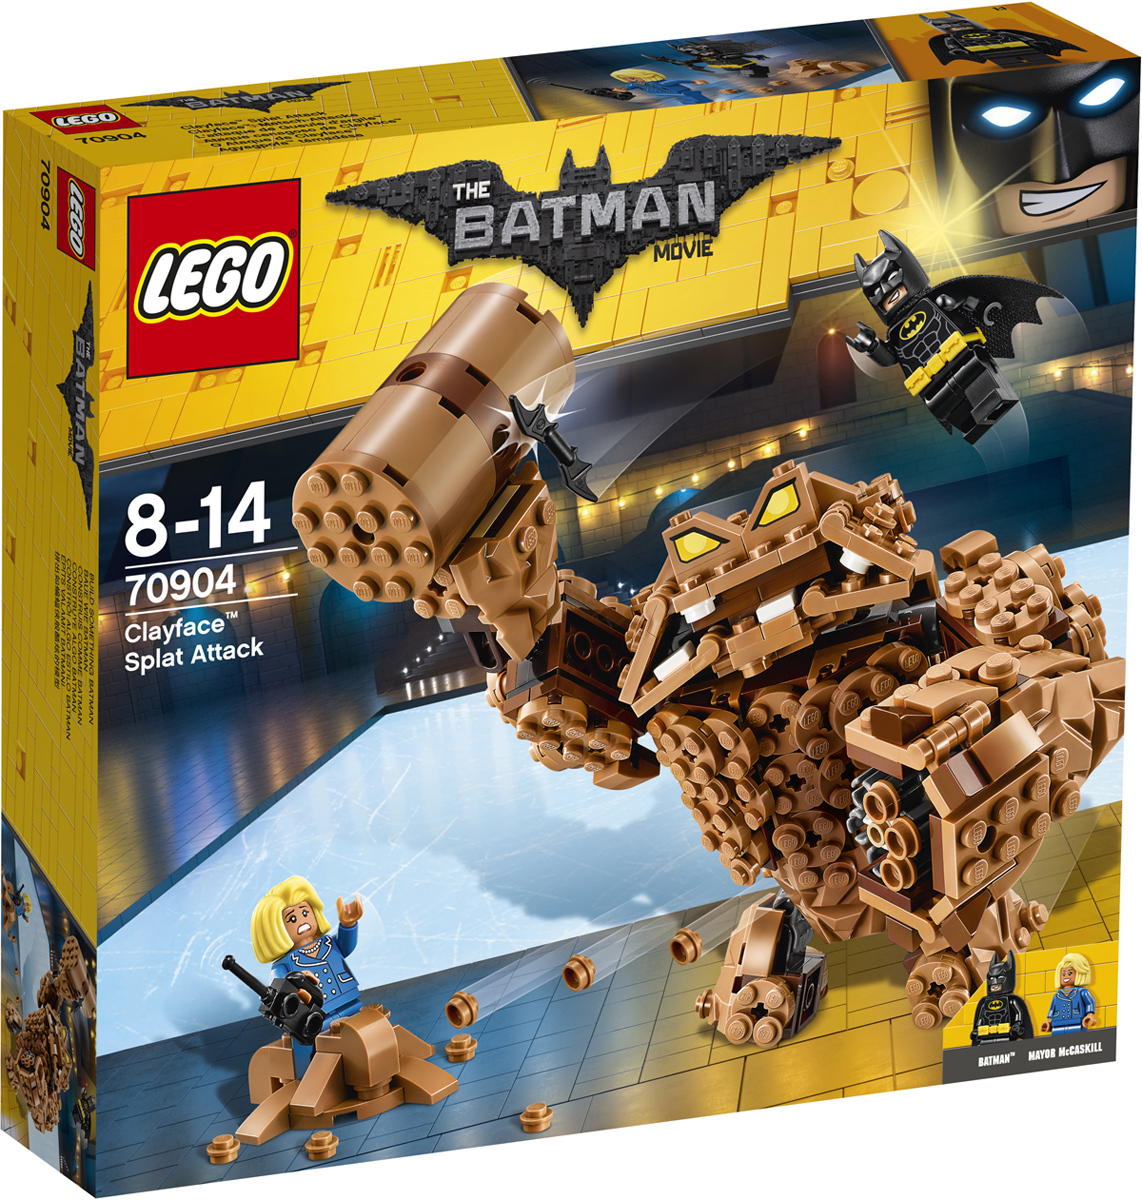 LEGO Batman Movie Конструктор Атака Глиноликого 70904 конструкторы lego lego атака глиноликого 70904 batman movie